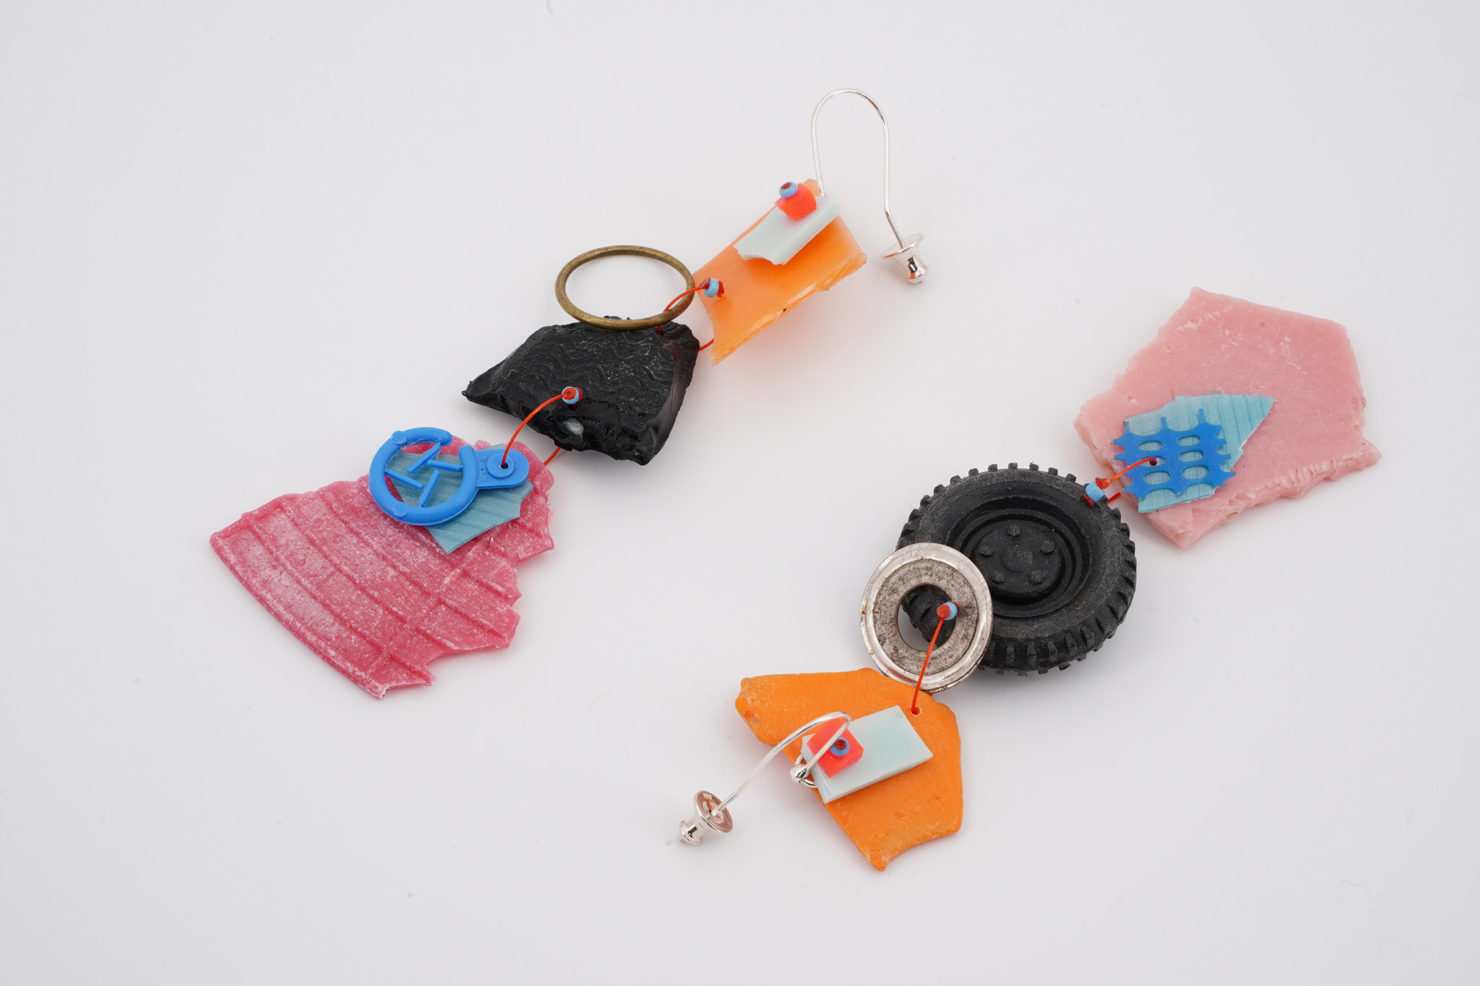 HANDMADE EARRINGS WITH ORIGINAL RECYCLED PLASTIC-MY LITTLE WHEEL